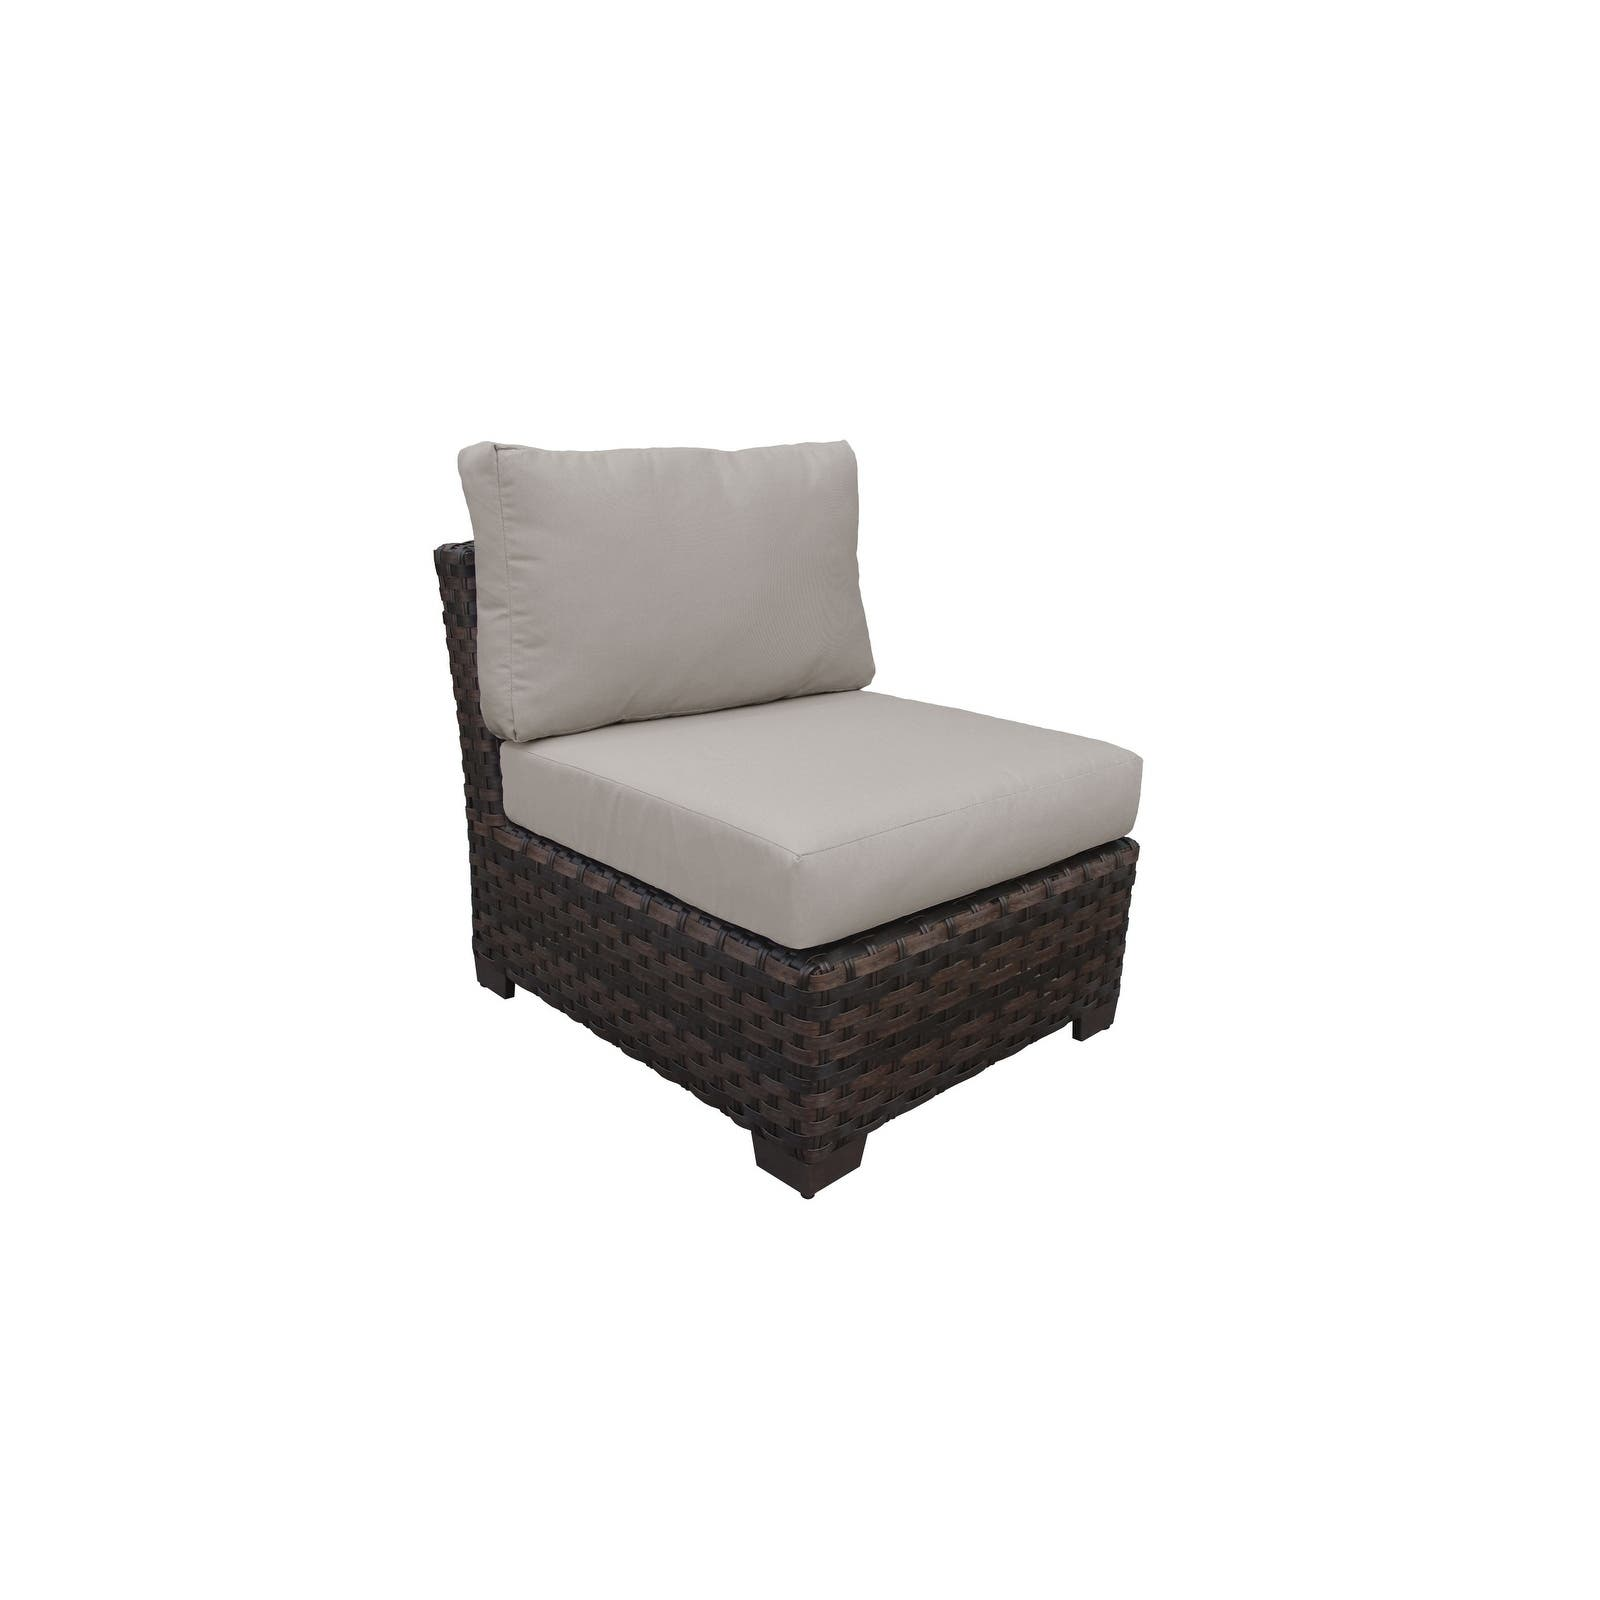 Online Patio Furniture Deals: Buy Outdoor Sofas, Chairs & Sectionals Online At Overstock